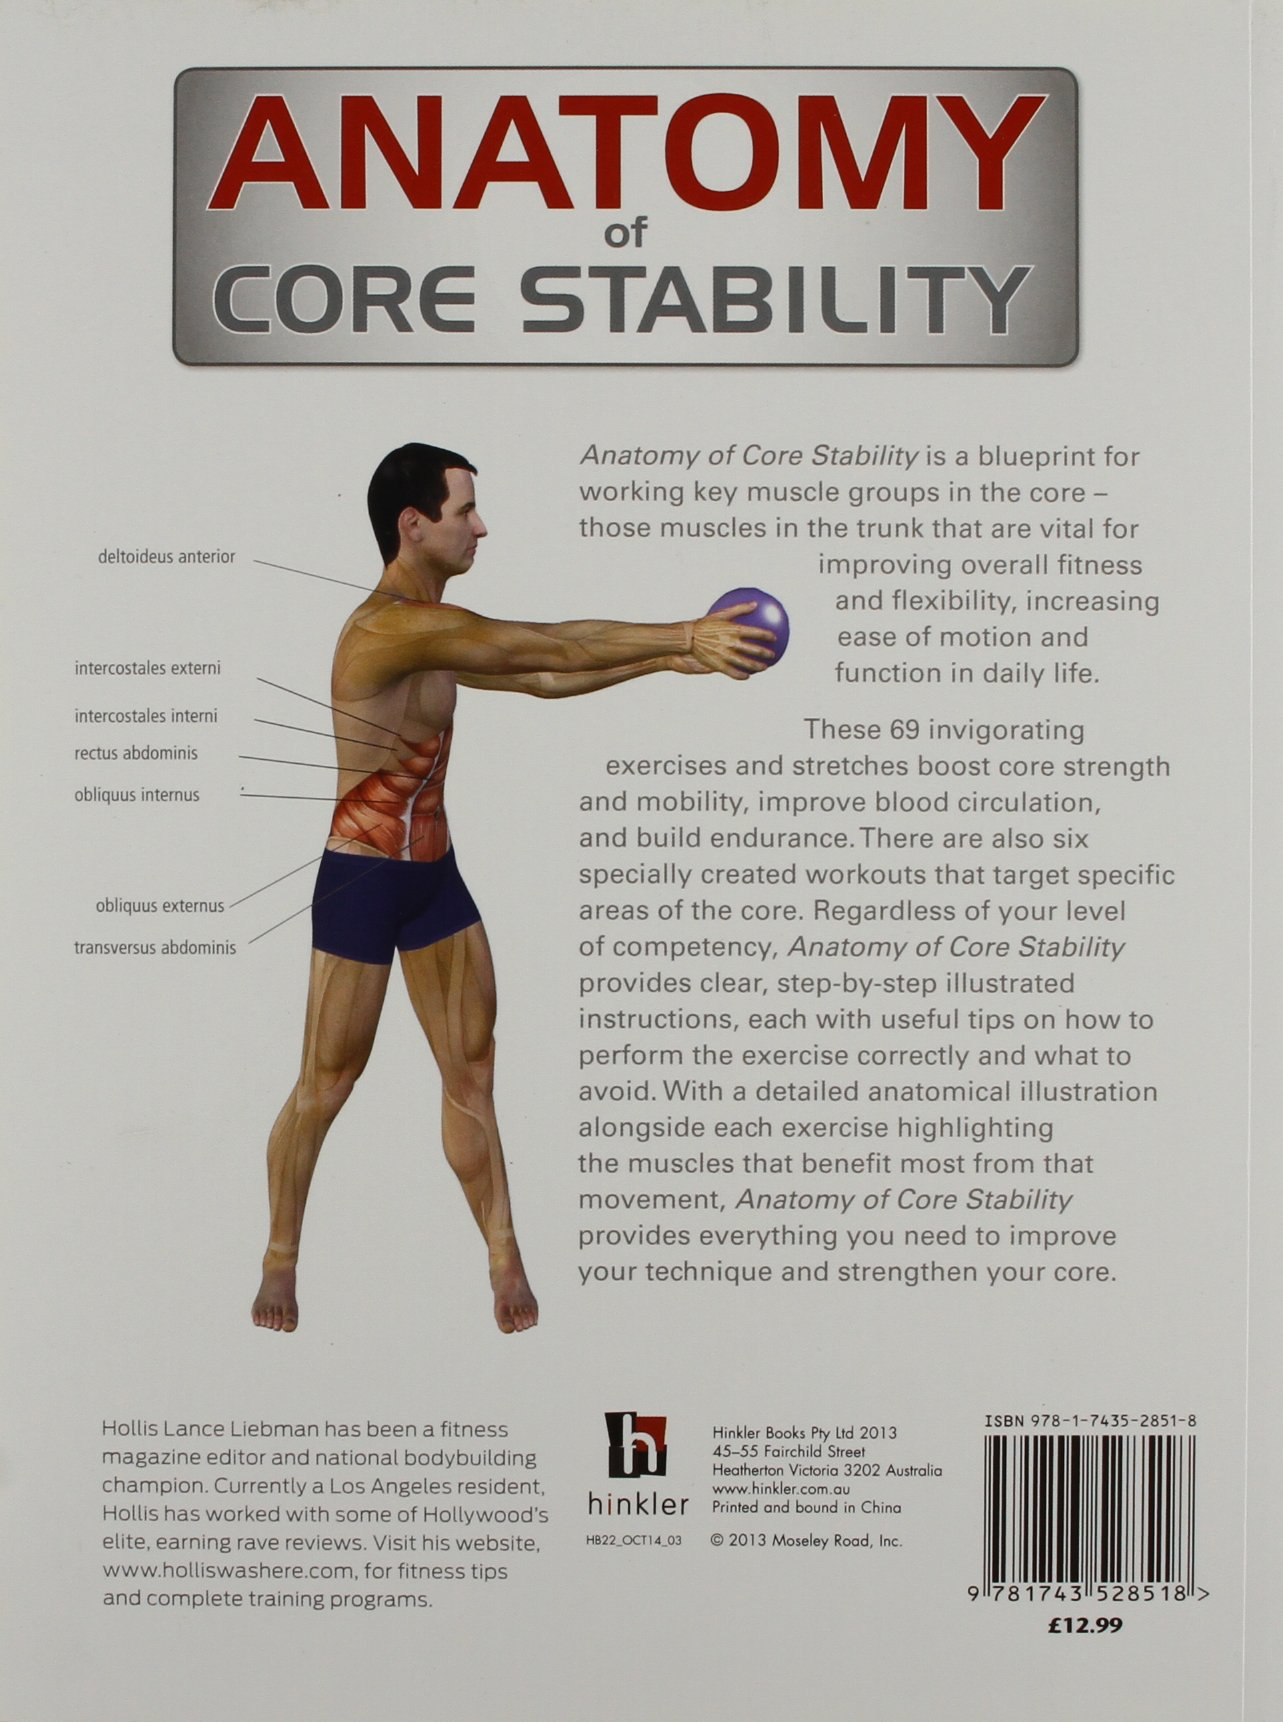 Anatomy of Core Stability (The Anatomy Series): Amazon.co.uk: Hollis ...